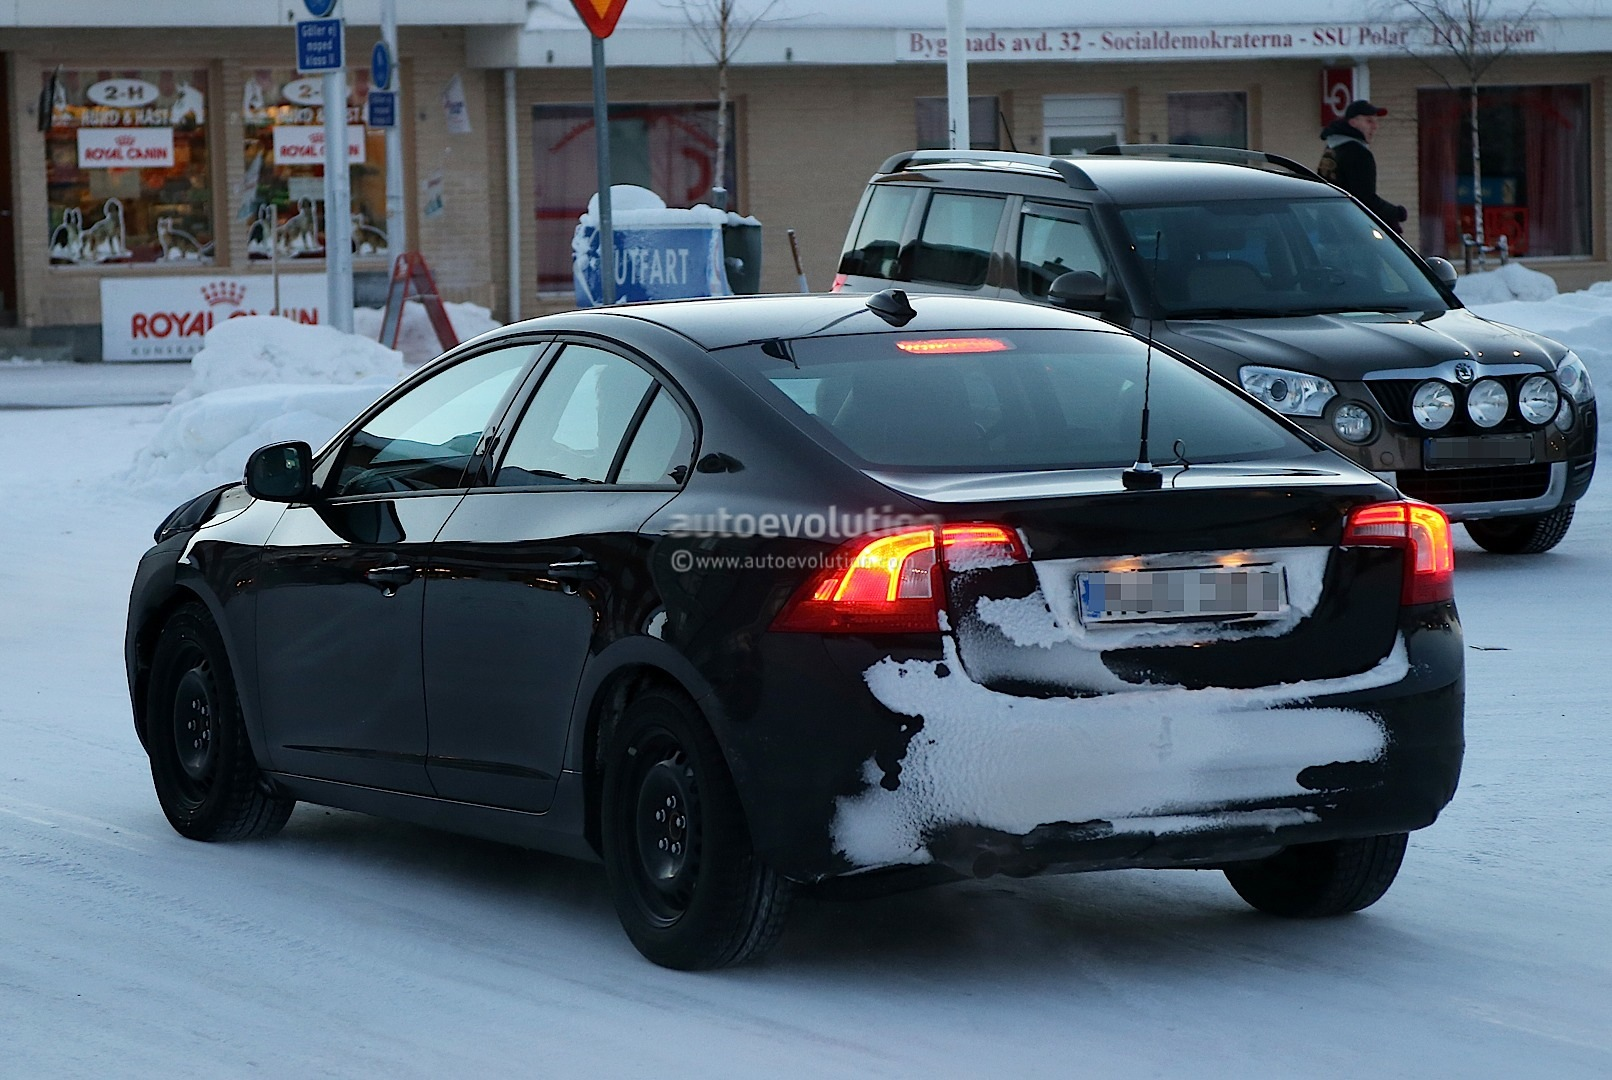 Spyshots: 2014 Volvo S60 Facelift Gets Interior Update - autoevolution